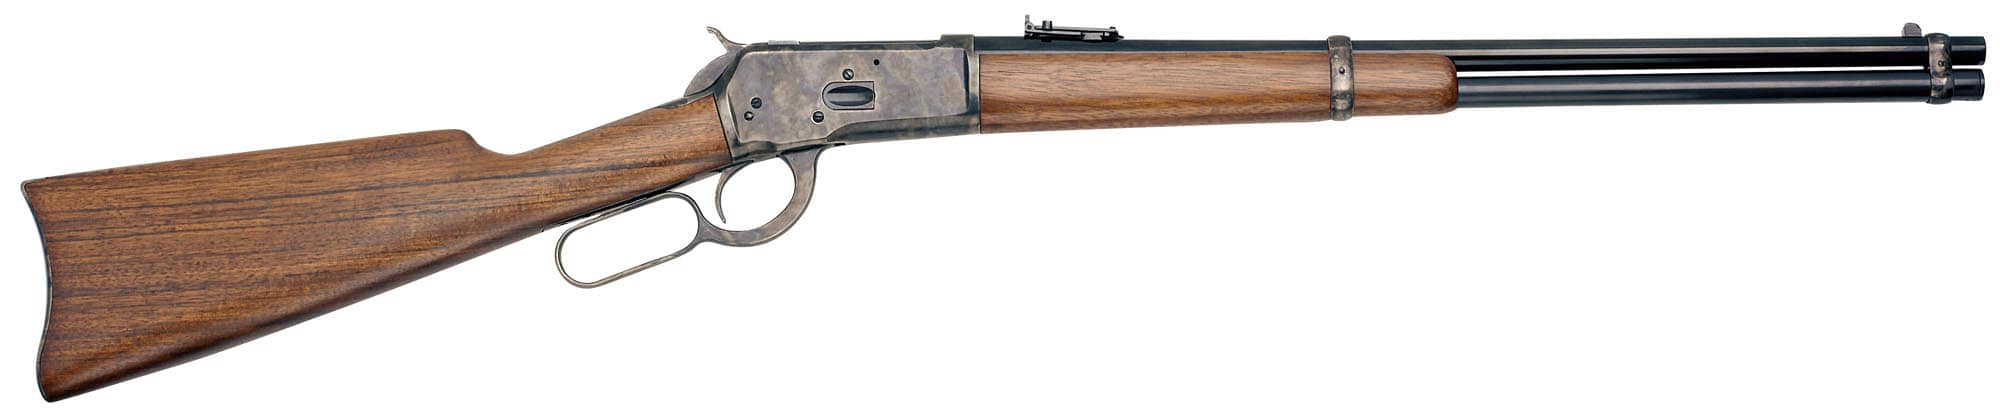 WE110-Carabine Chiappa Lever Action 44 mag modèle 1892 - WE110